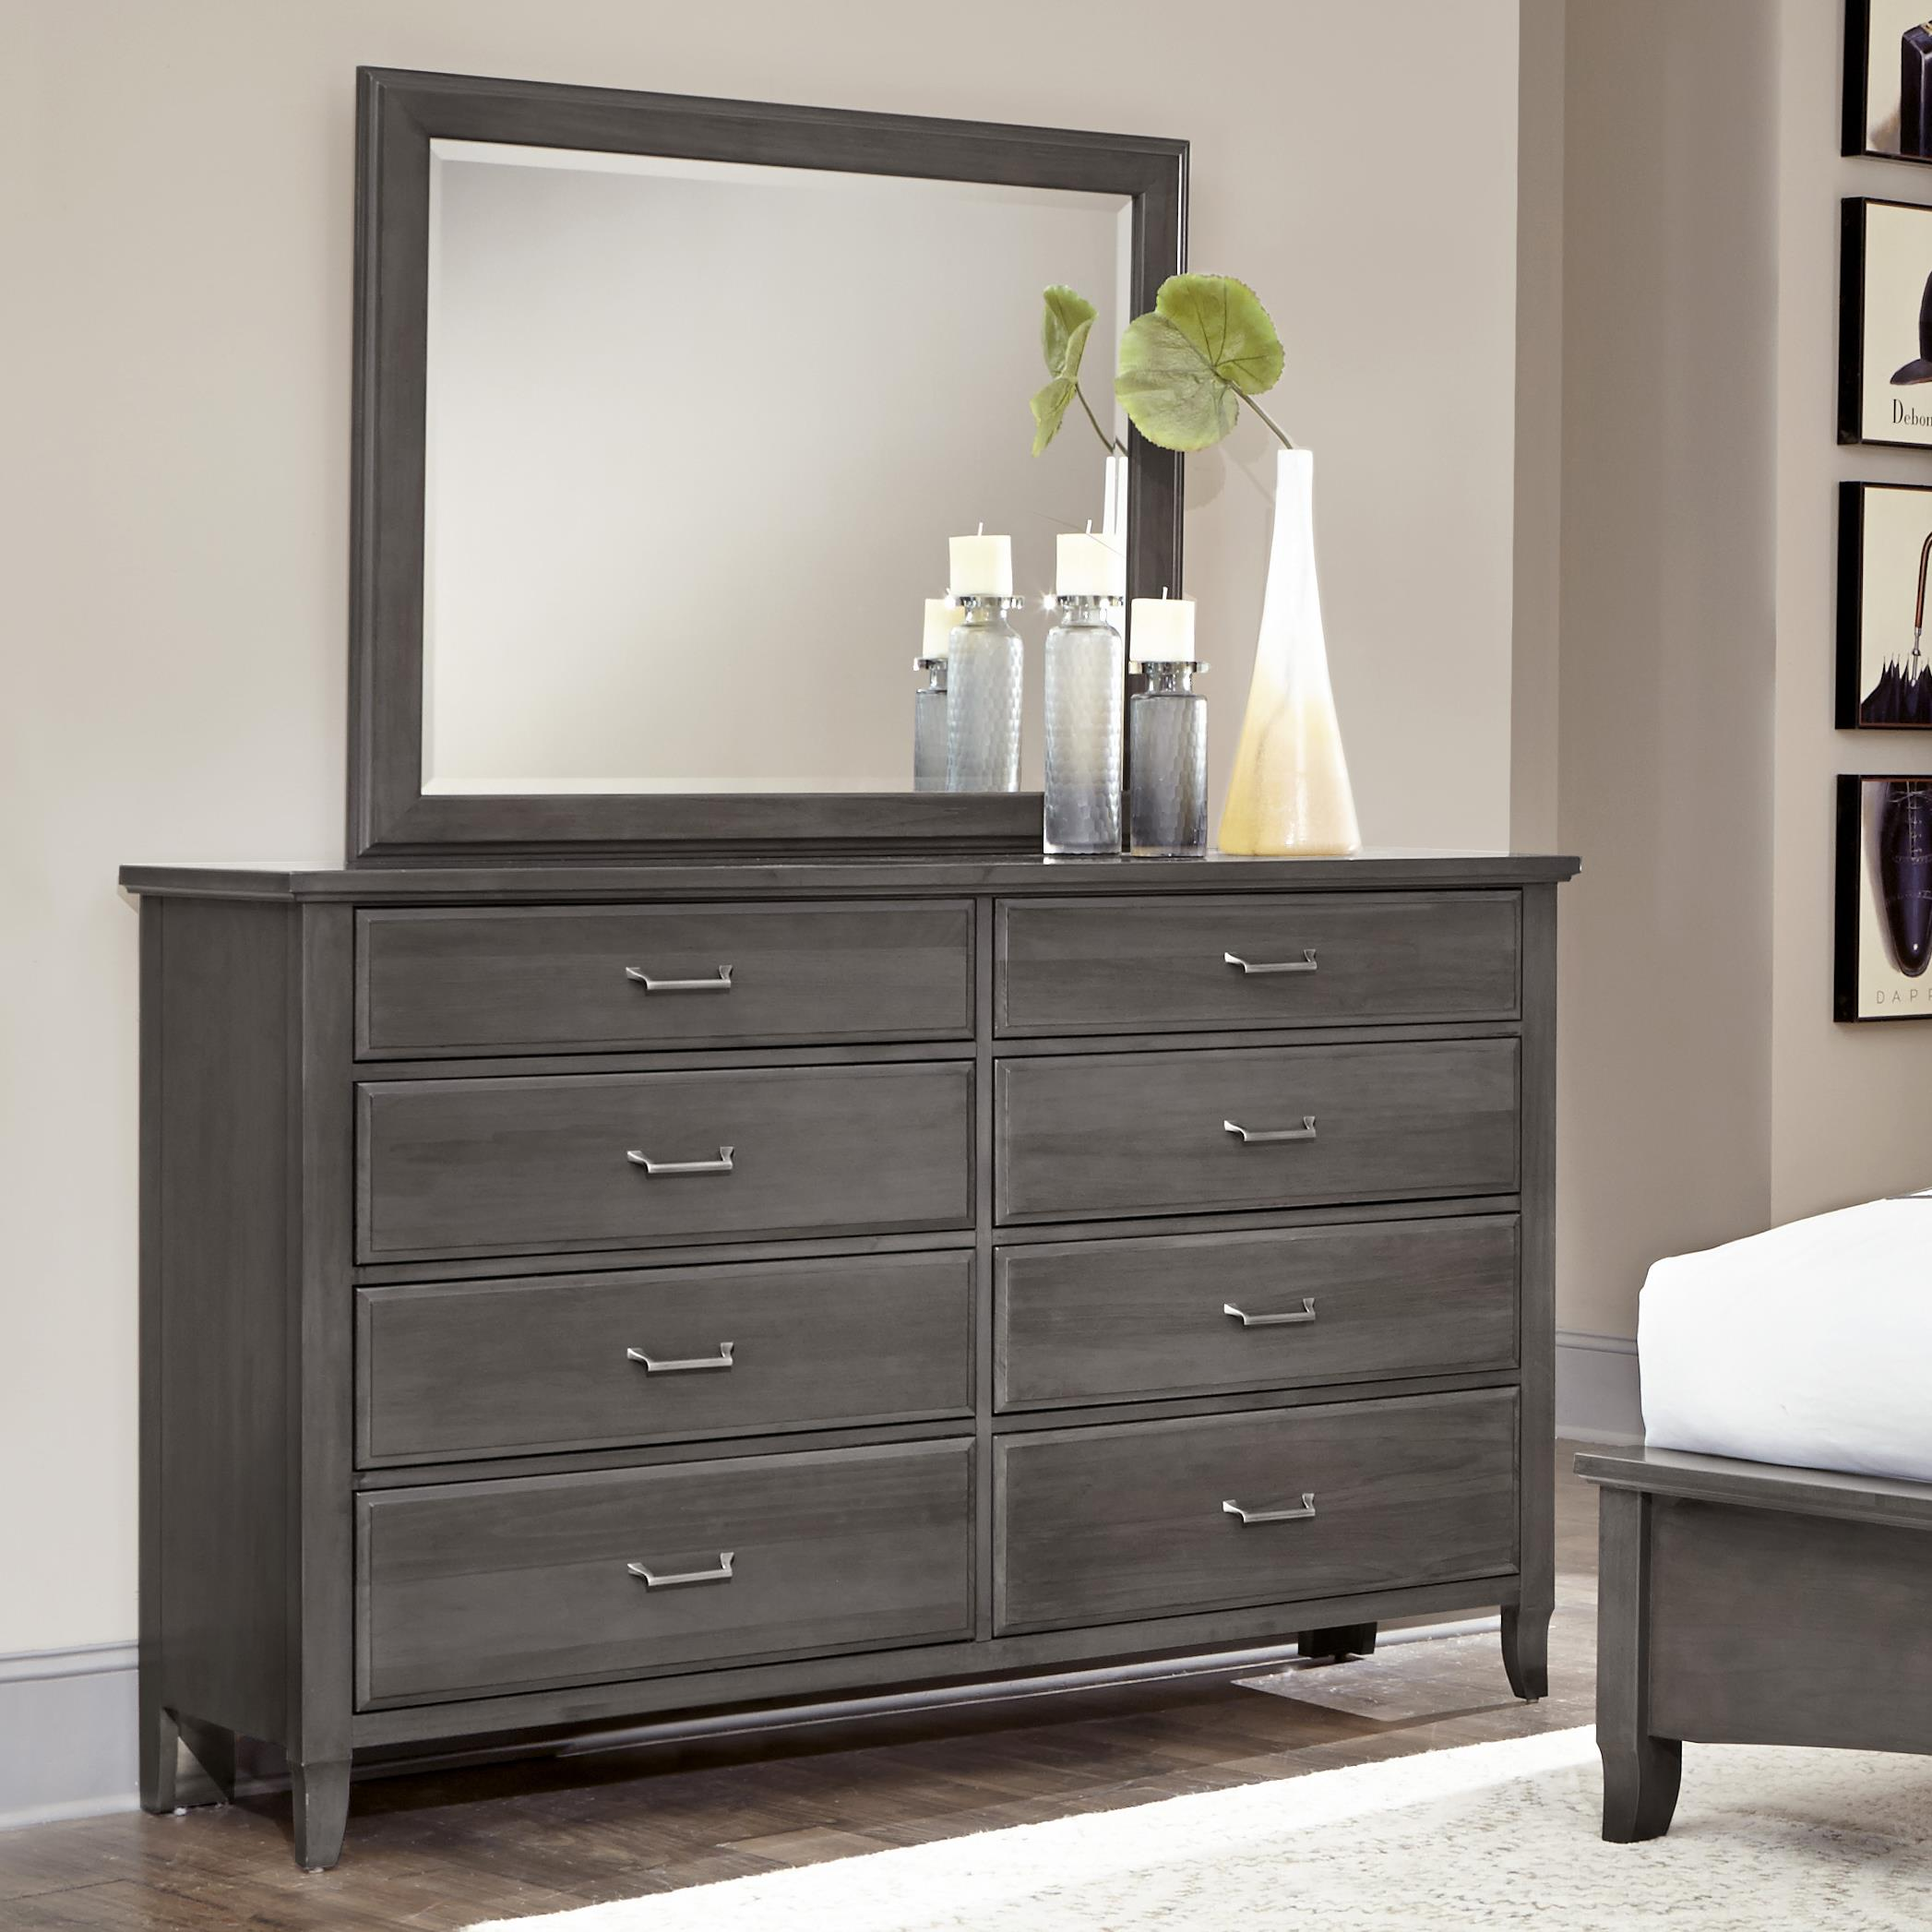 Vaughan Bassett Commentary Triple Dresser & Large Landscape Mirror - Item Number: 394-002+445